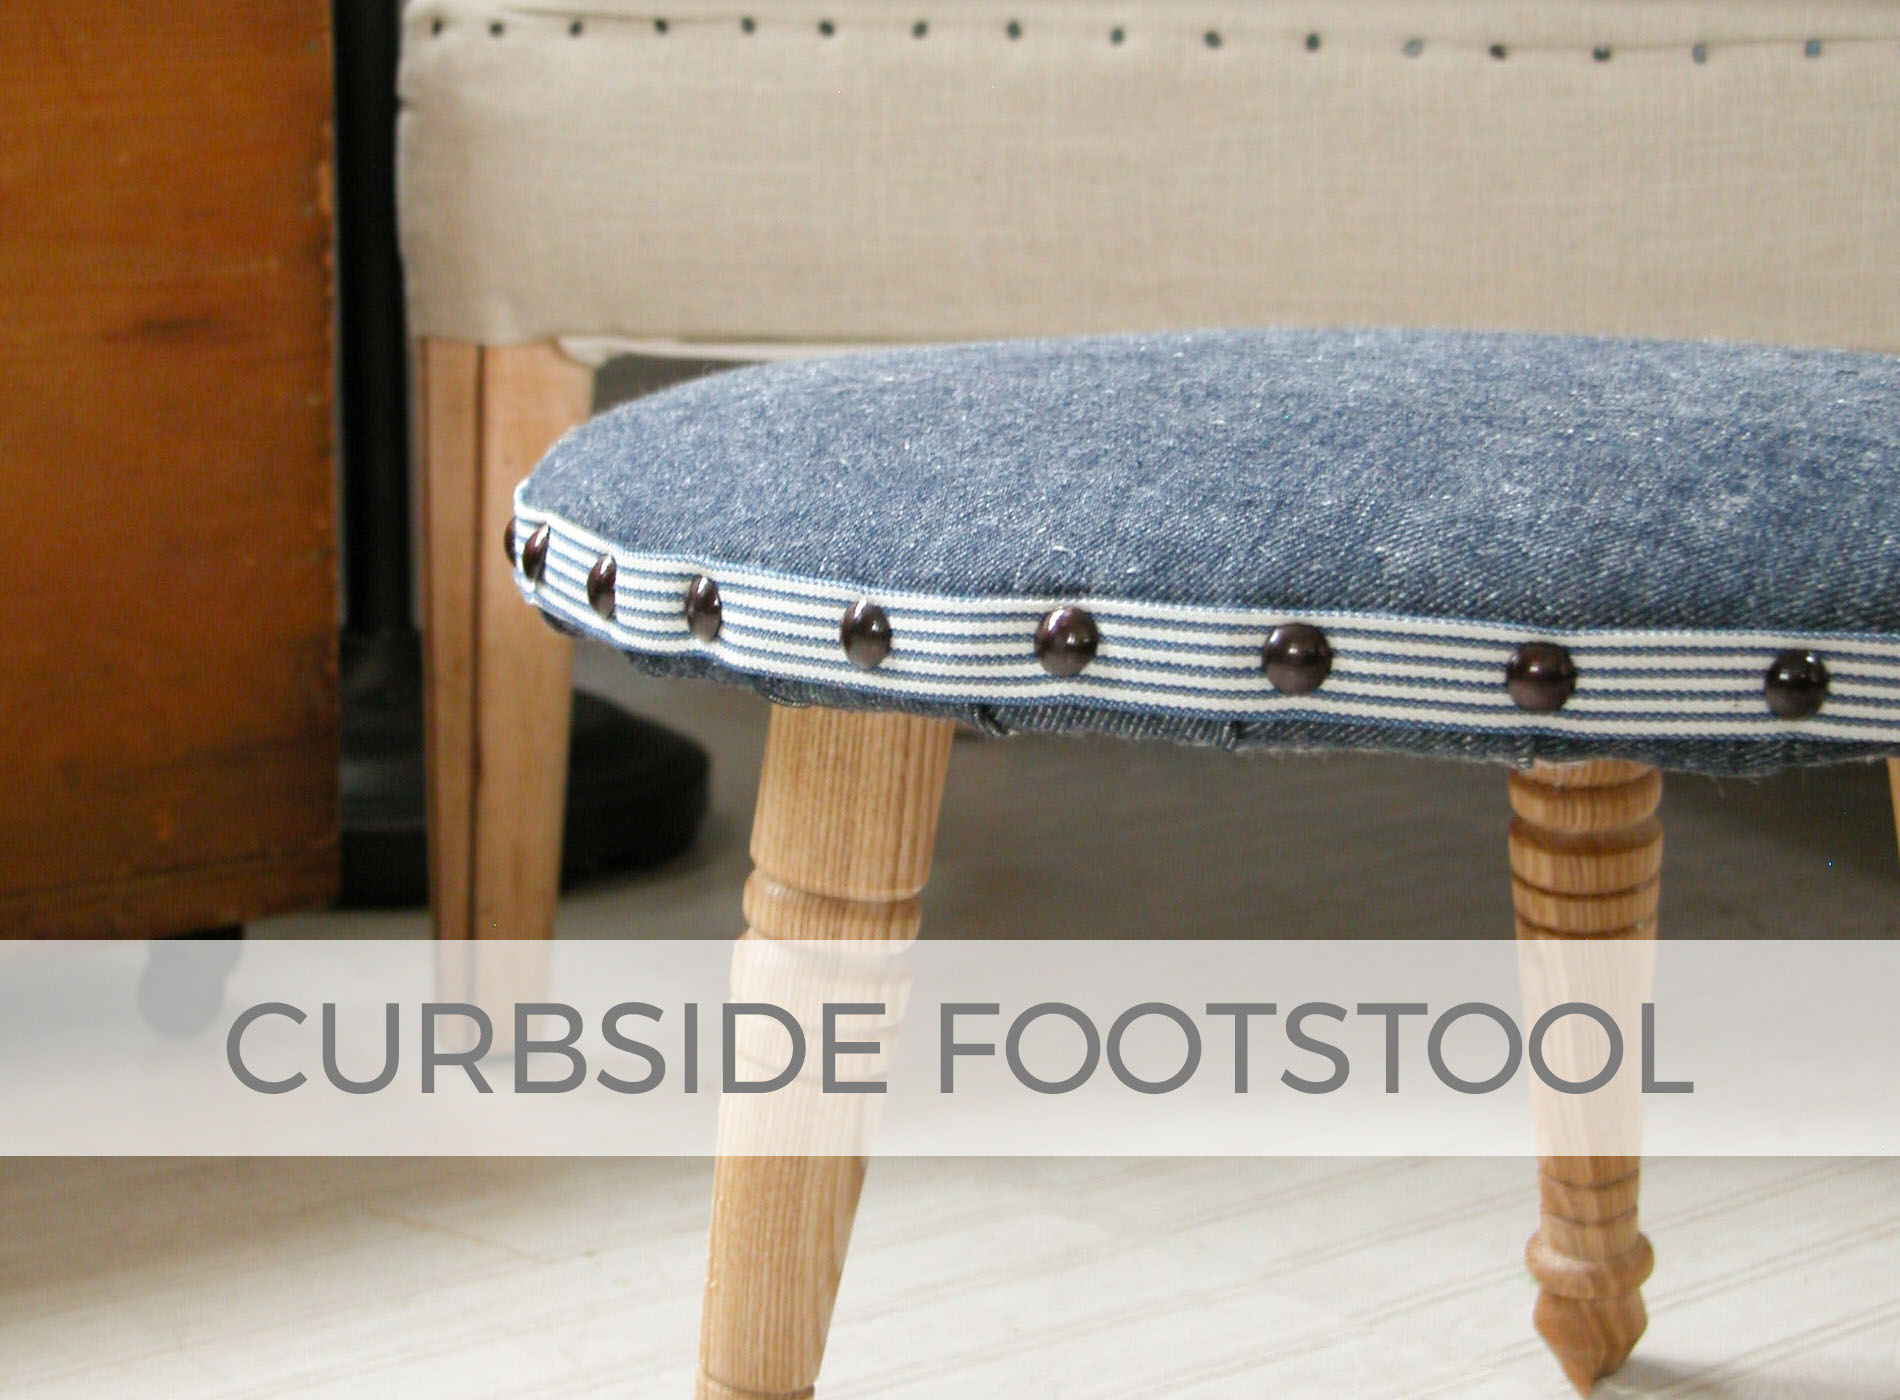 Vintage Footstool Found Curbside Made New by Prodigal Pieces | prodigalpieces.com